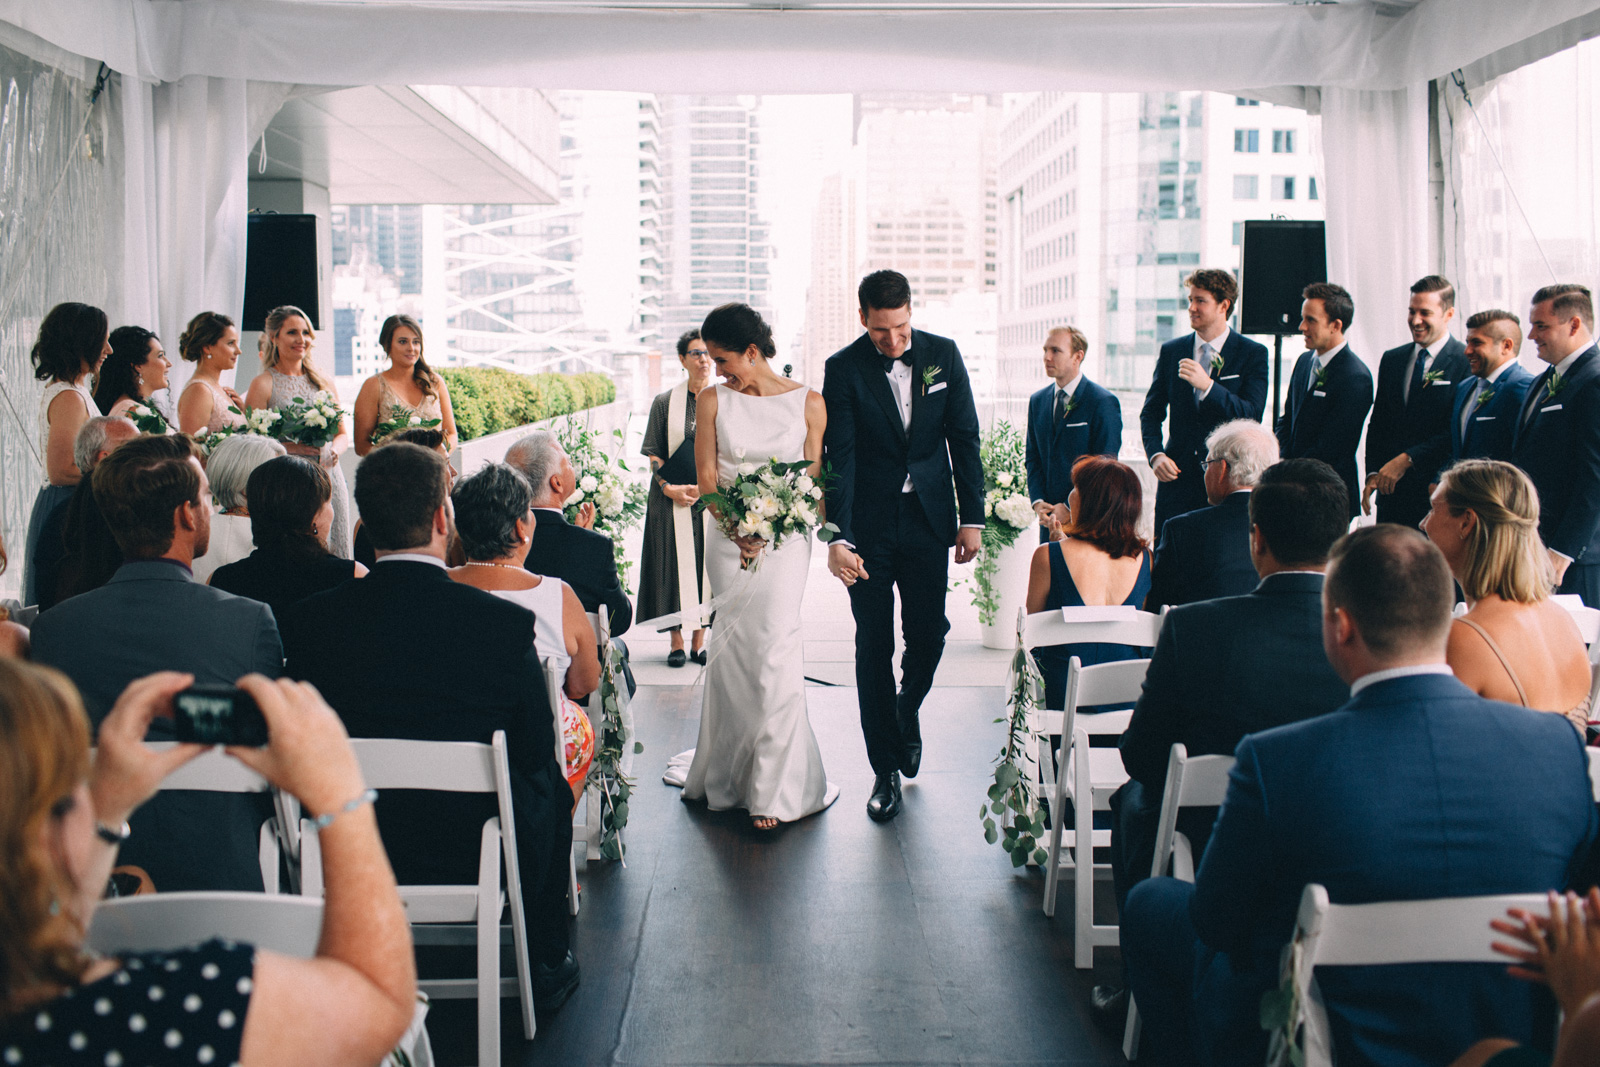 Malaparte-wedding-photography-Toronto-by-Sam-Wong-of-Artanis-Collective_52.jpg